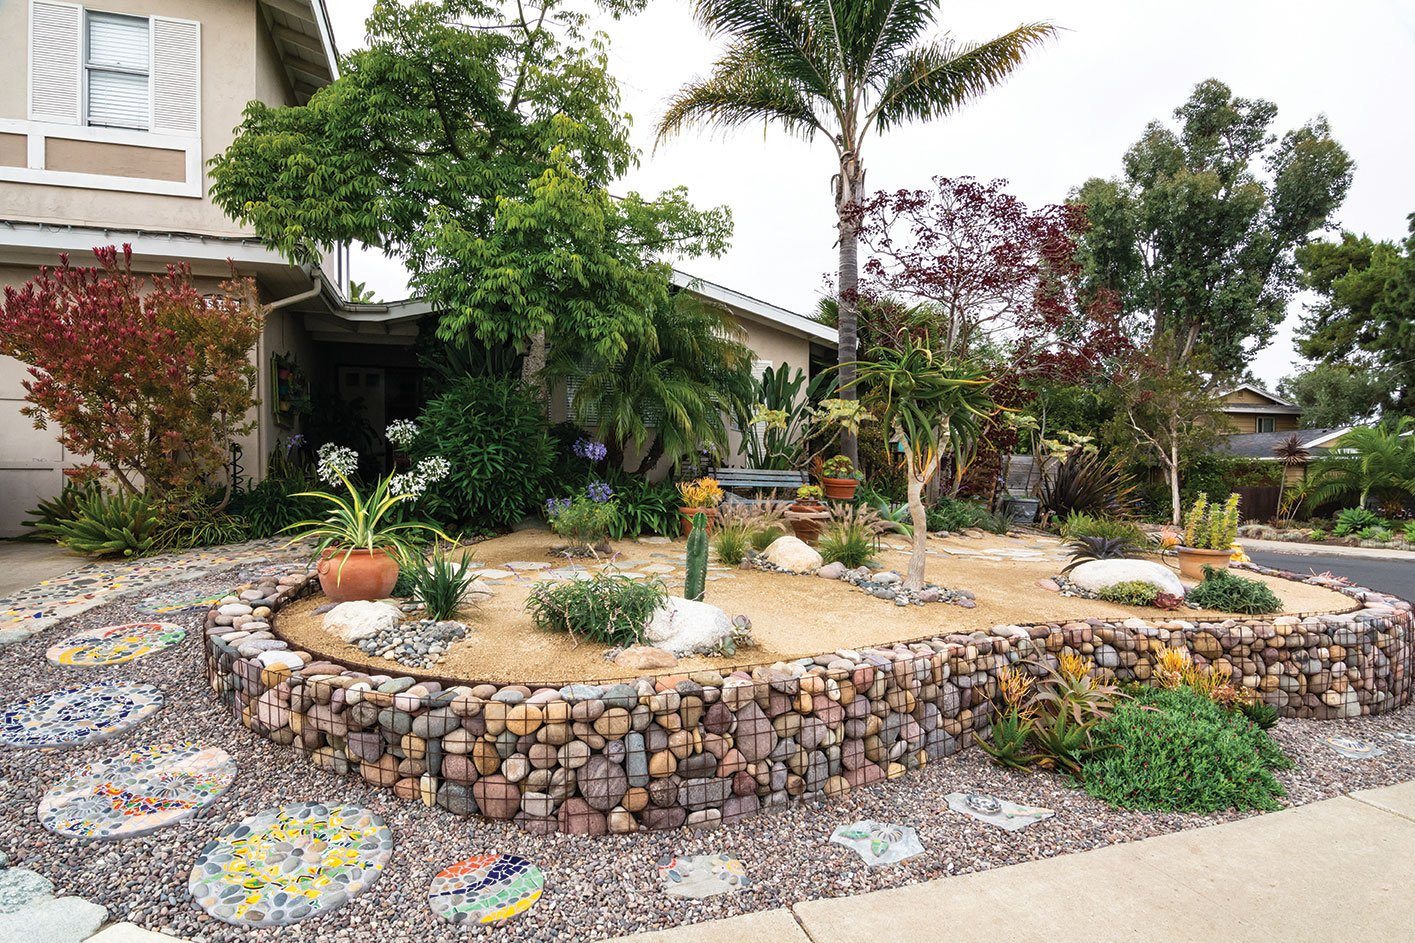 changeable garden with lots of art, mosaic pavers and gravel with succulents and drought tolerant plants